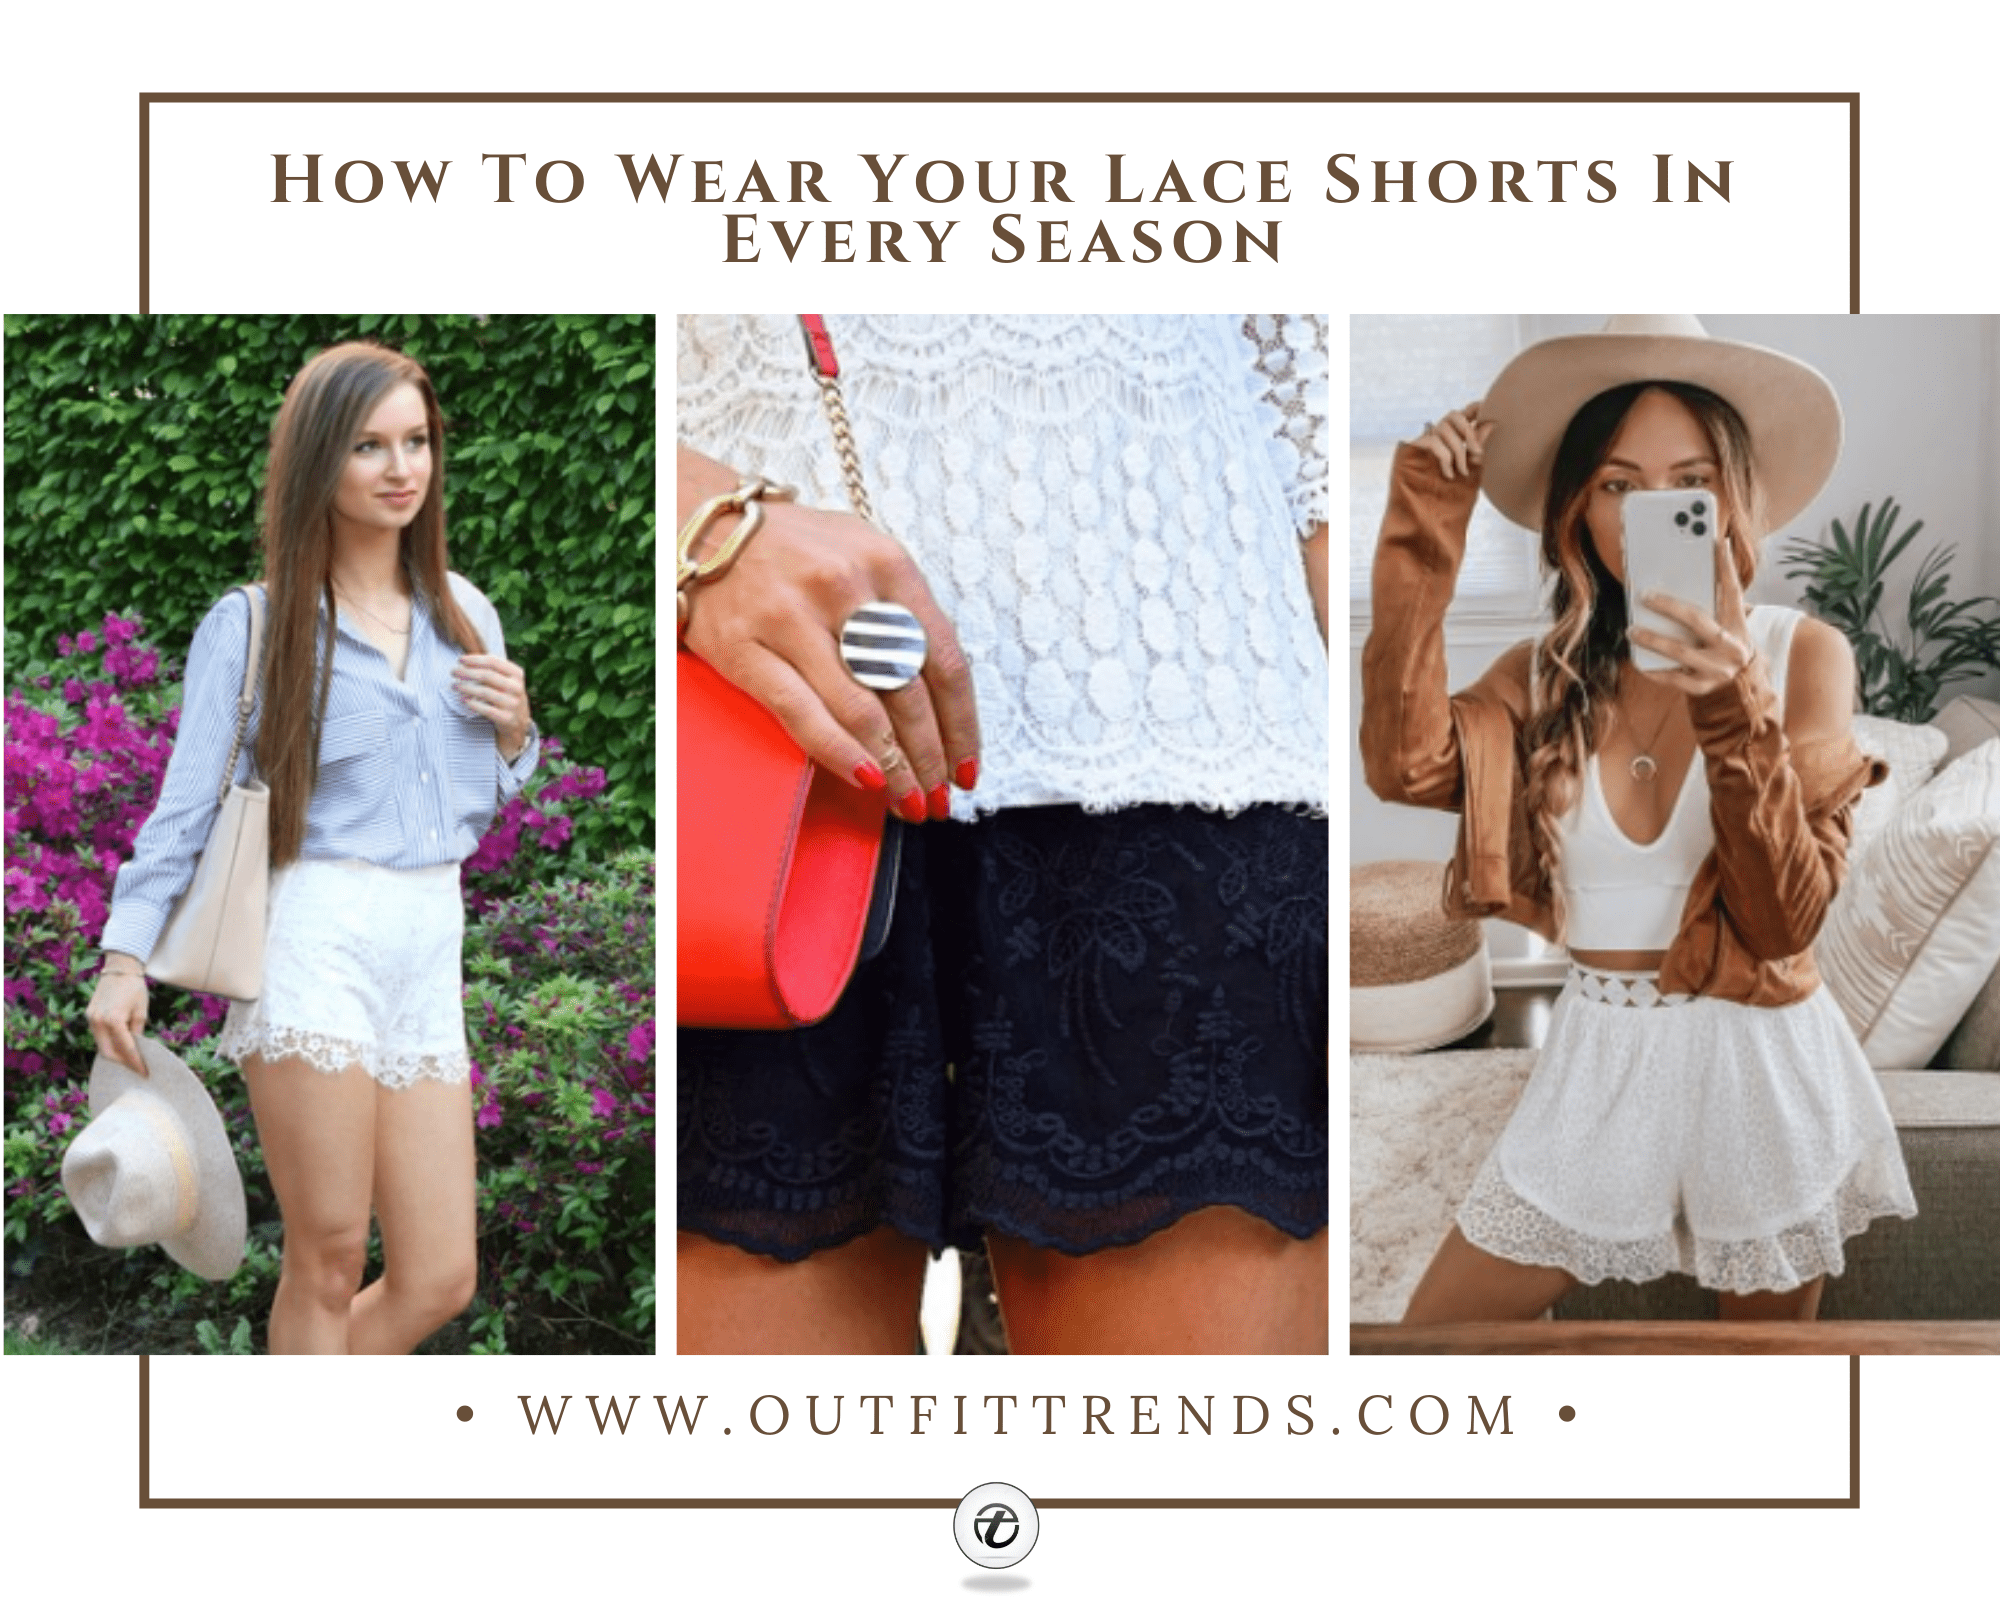 Cute Outfits With Lace Shorts – 20 Ways To Wear Lace Shorts